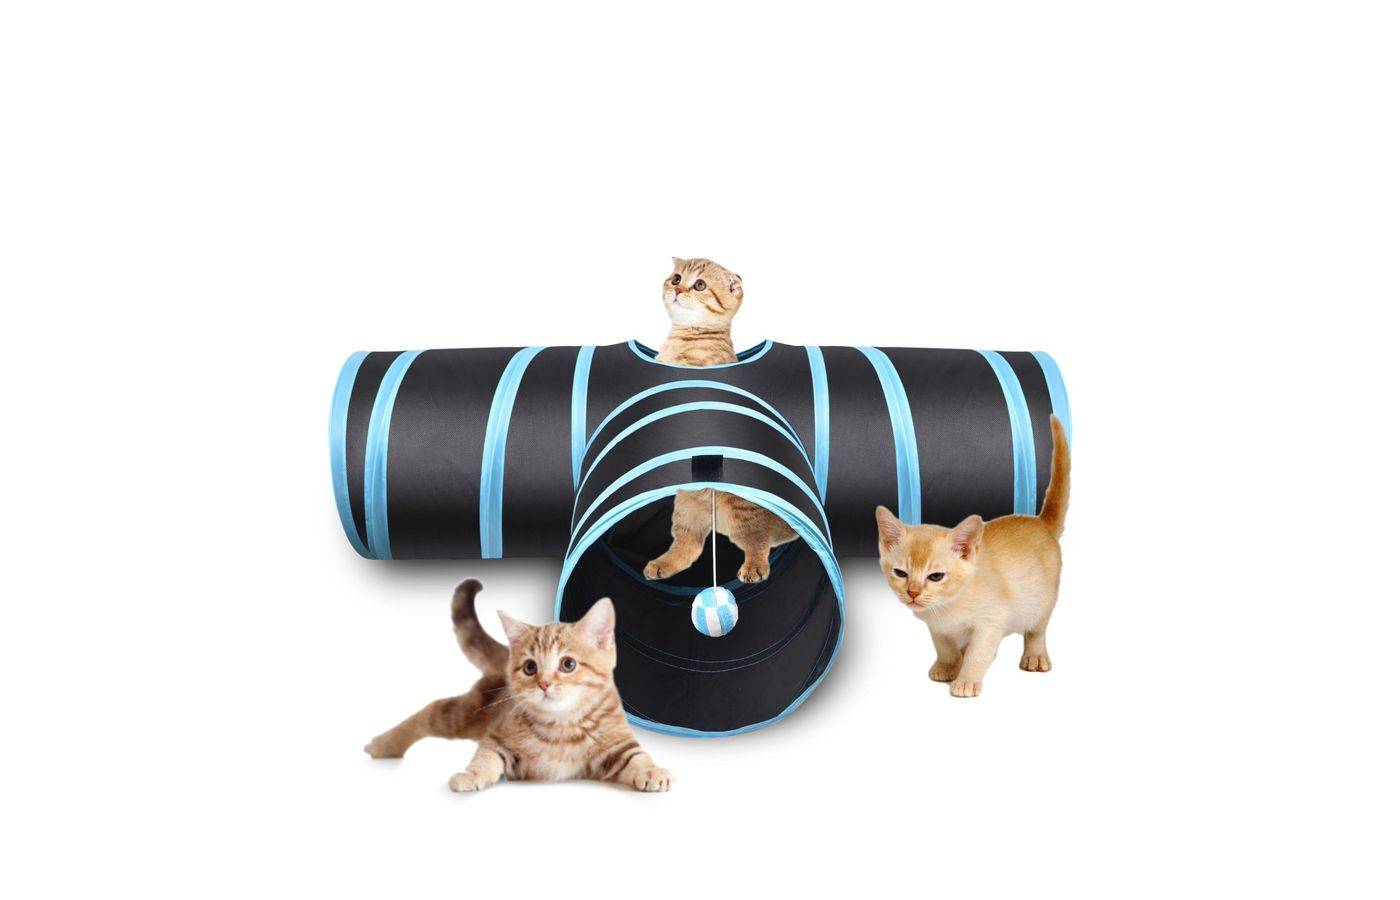 Creaker 3 Way Cat Tunnel, Collapsible Pet Toy Tunnel with Ball for Cat